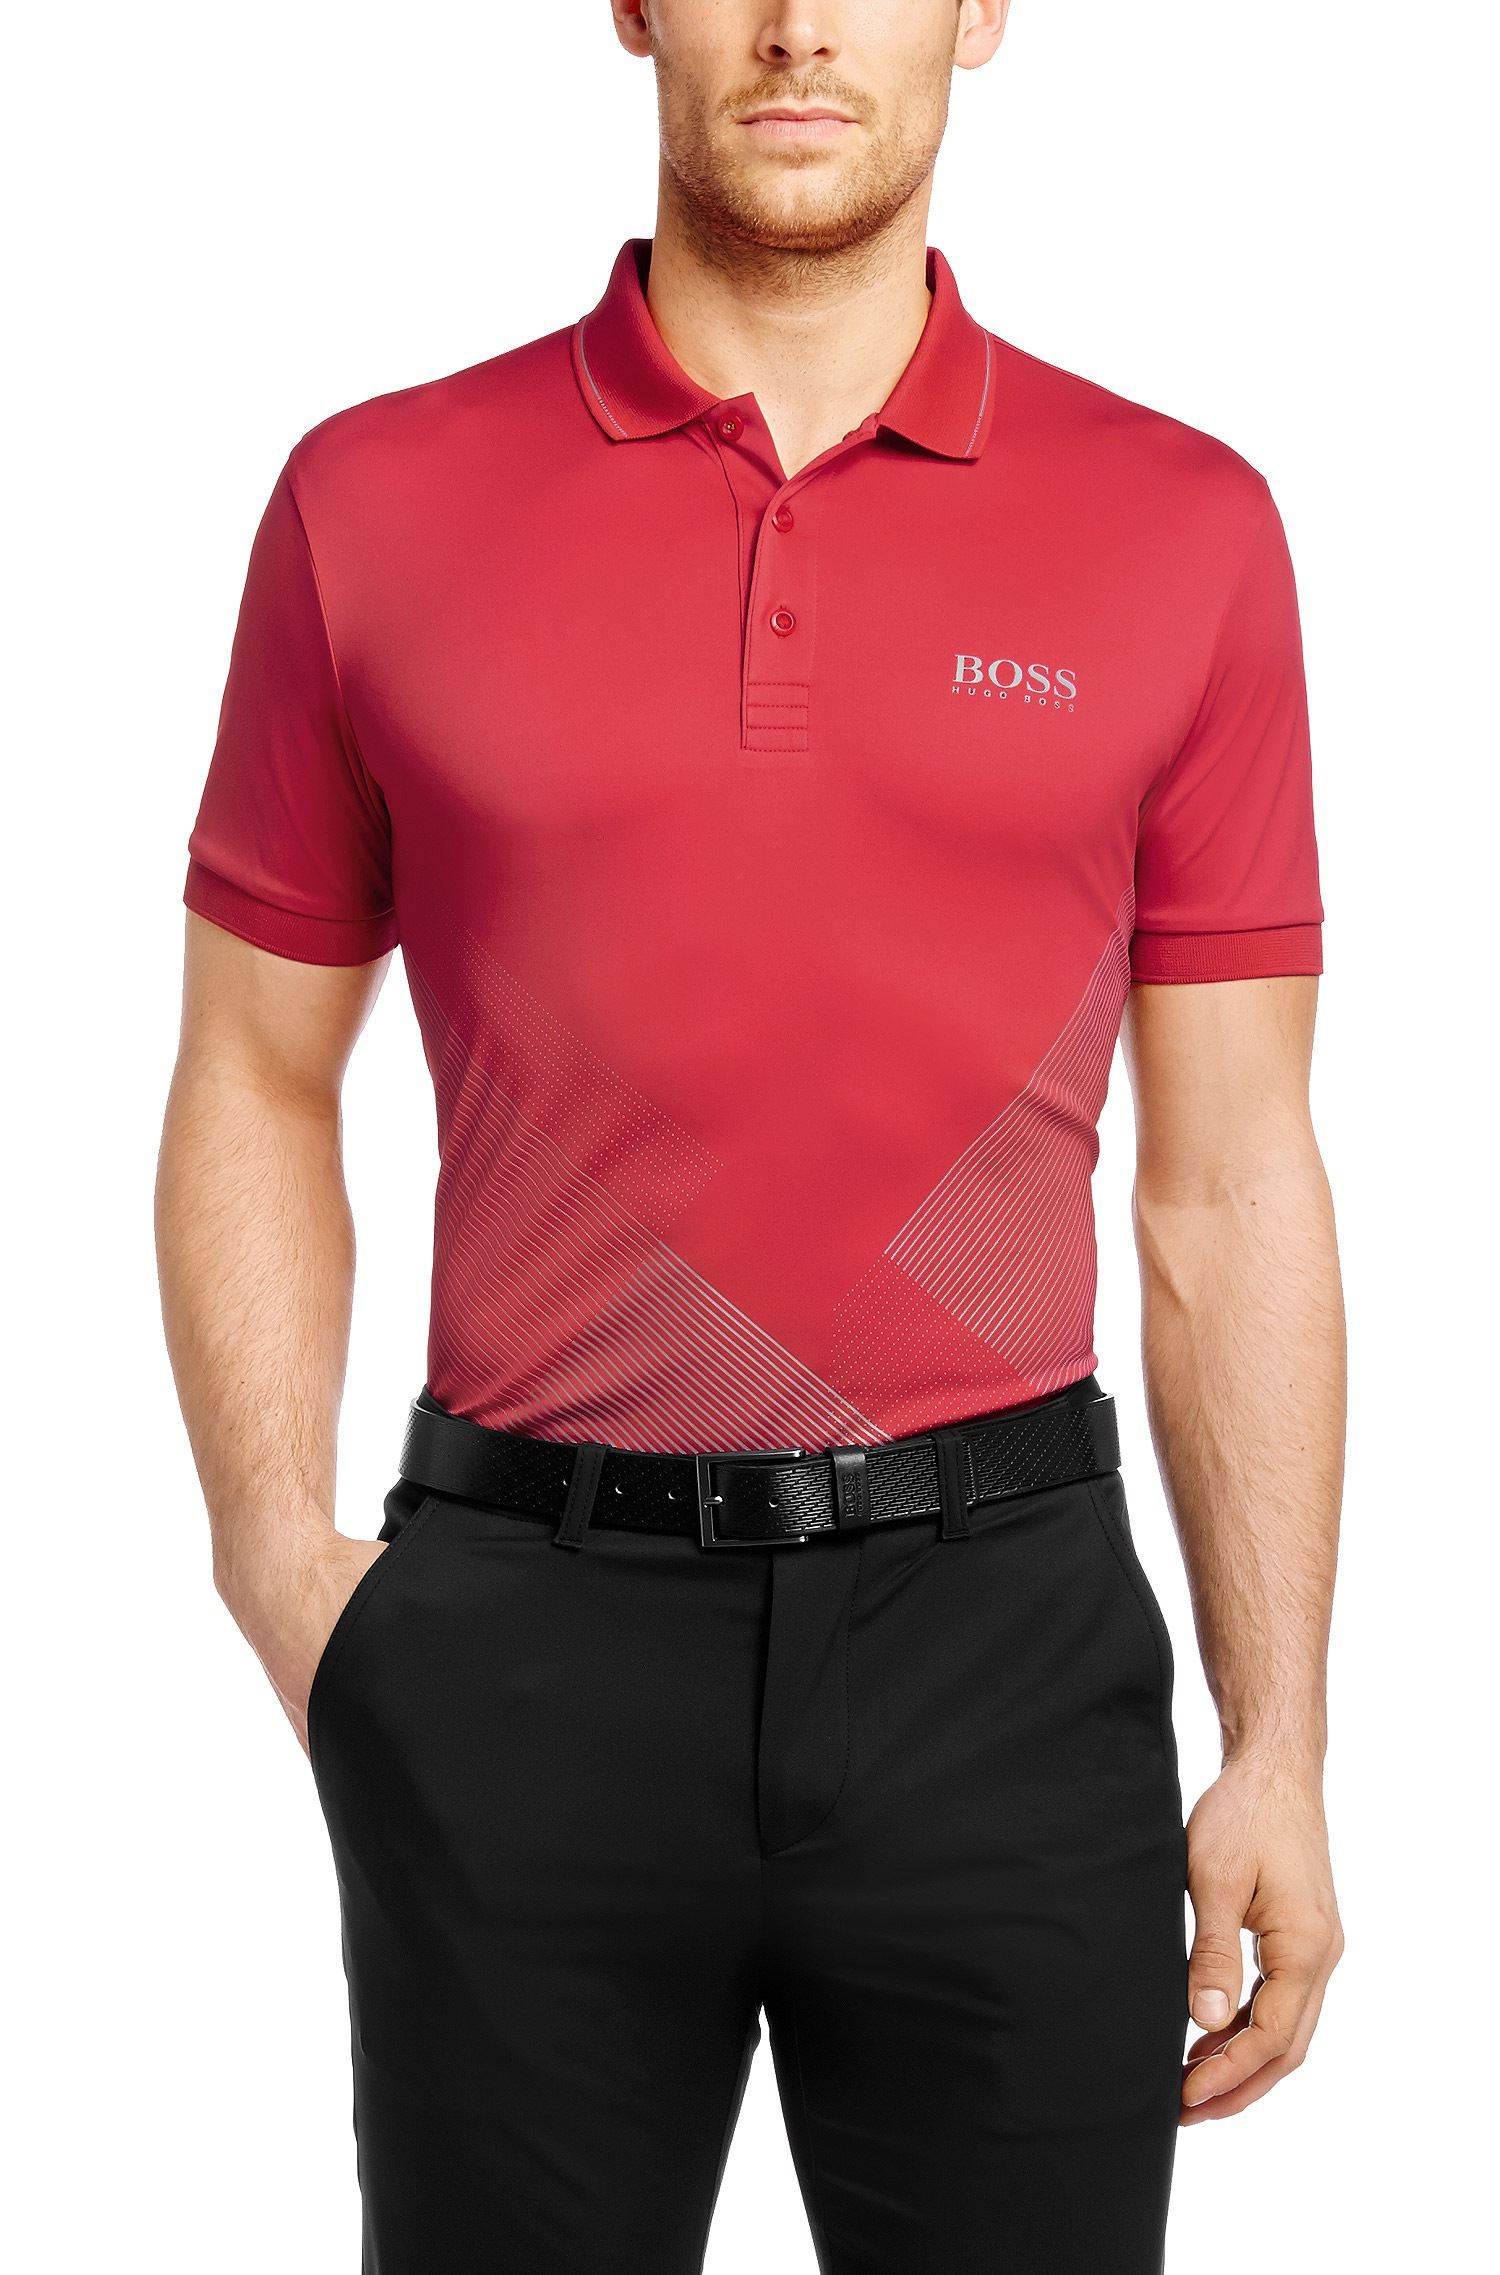 f3aba58e ... Green label Polo Source · Hugo Boss Paddy Pro 2 Polo Shirt EDGE  Engineering and Consulting